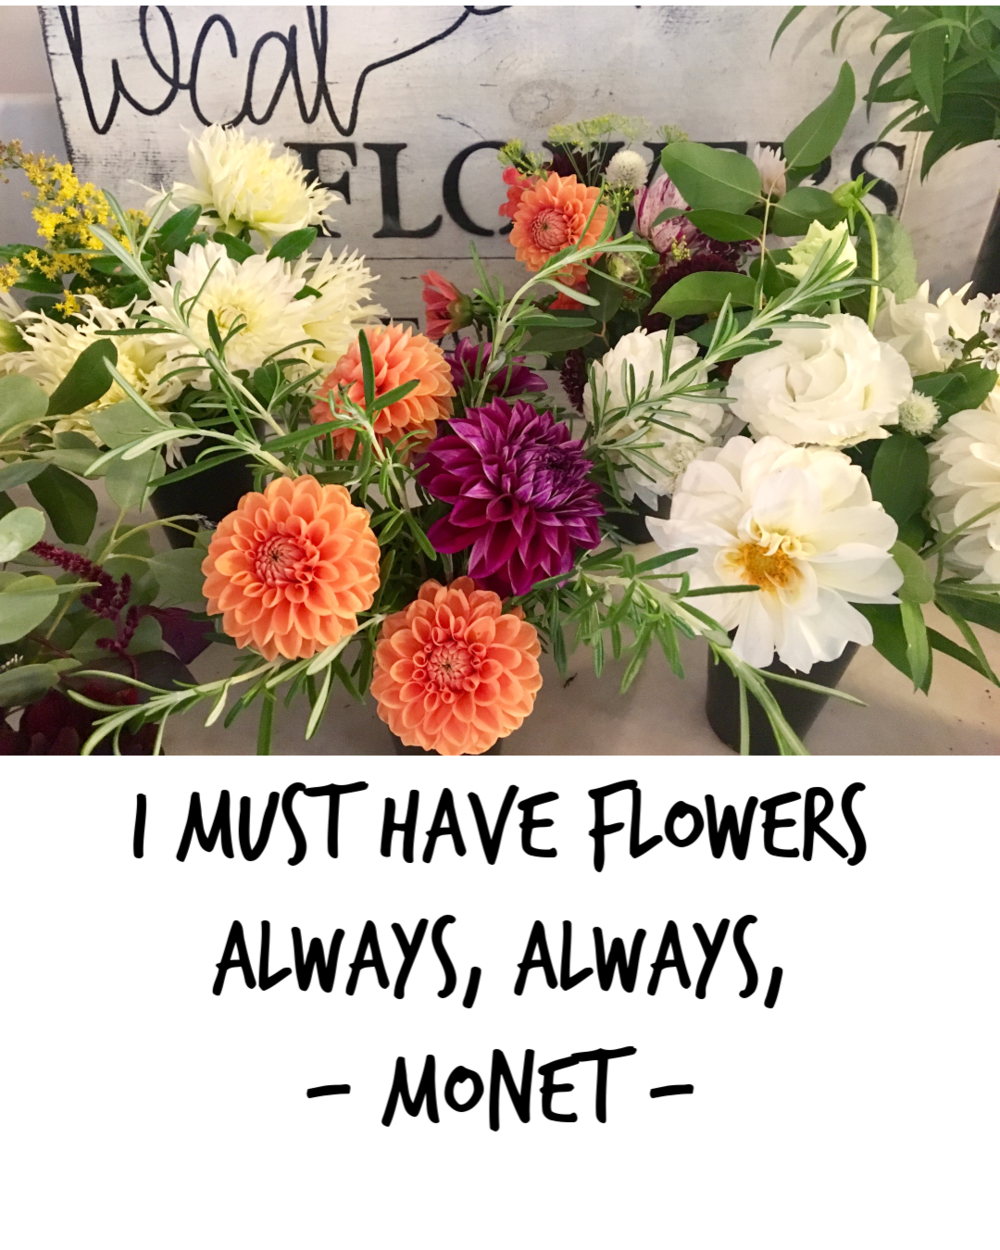 Flower Quote.png